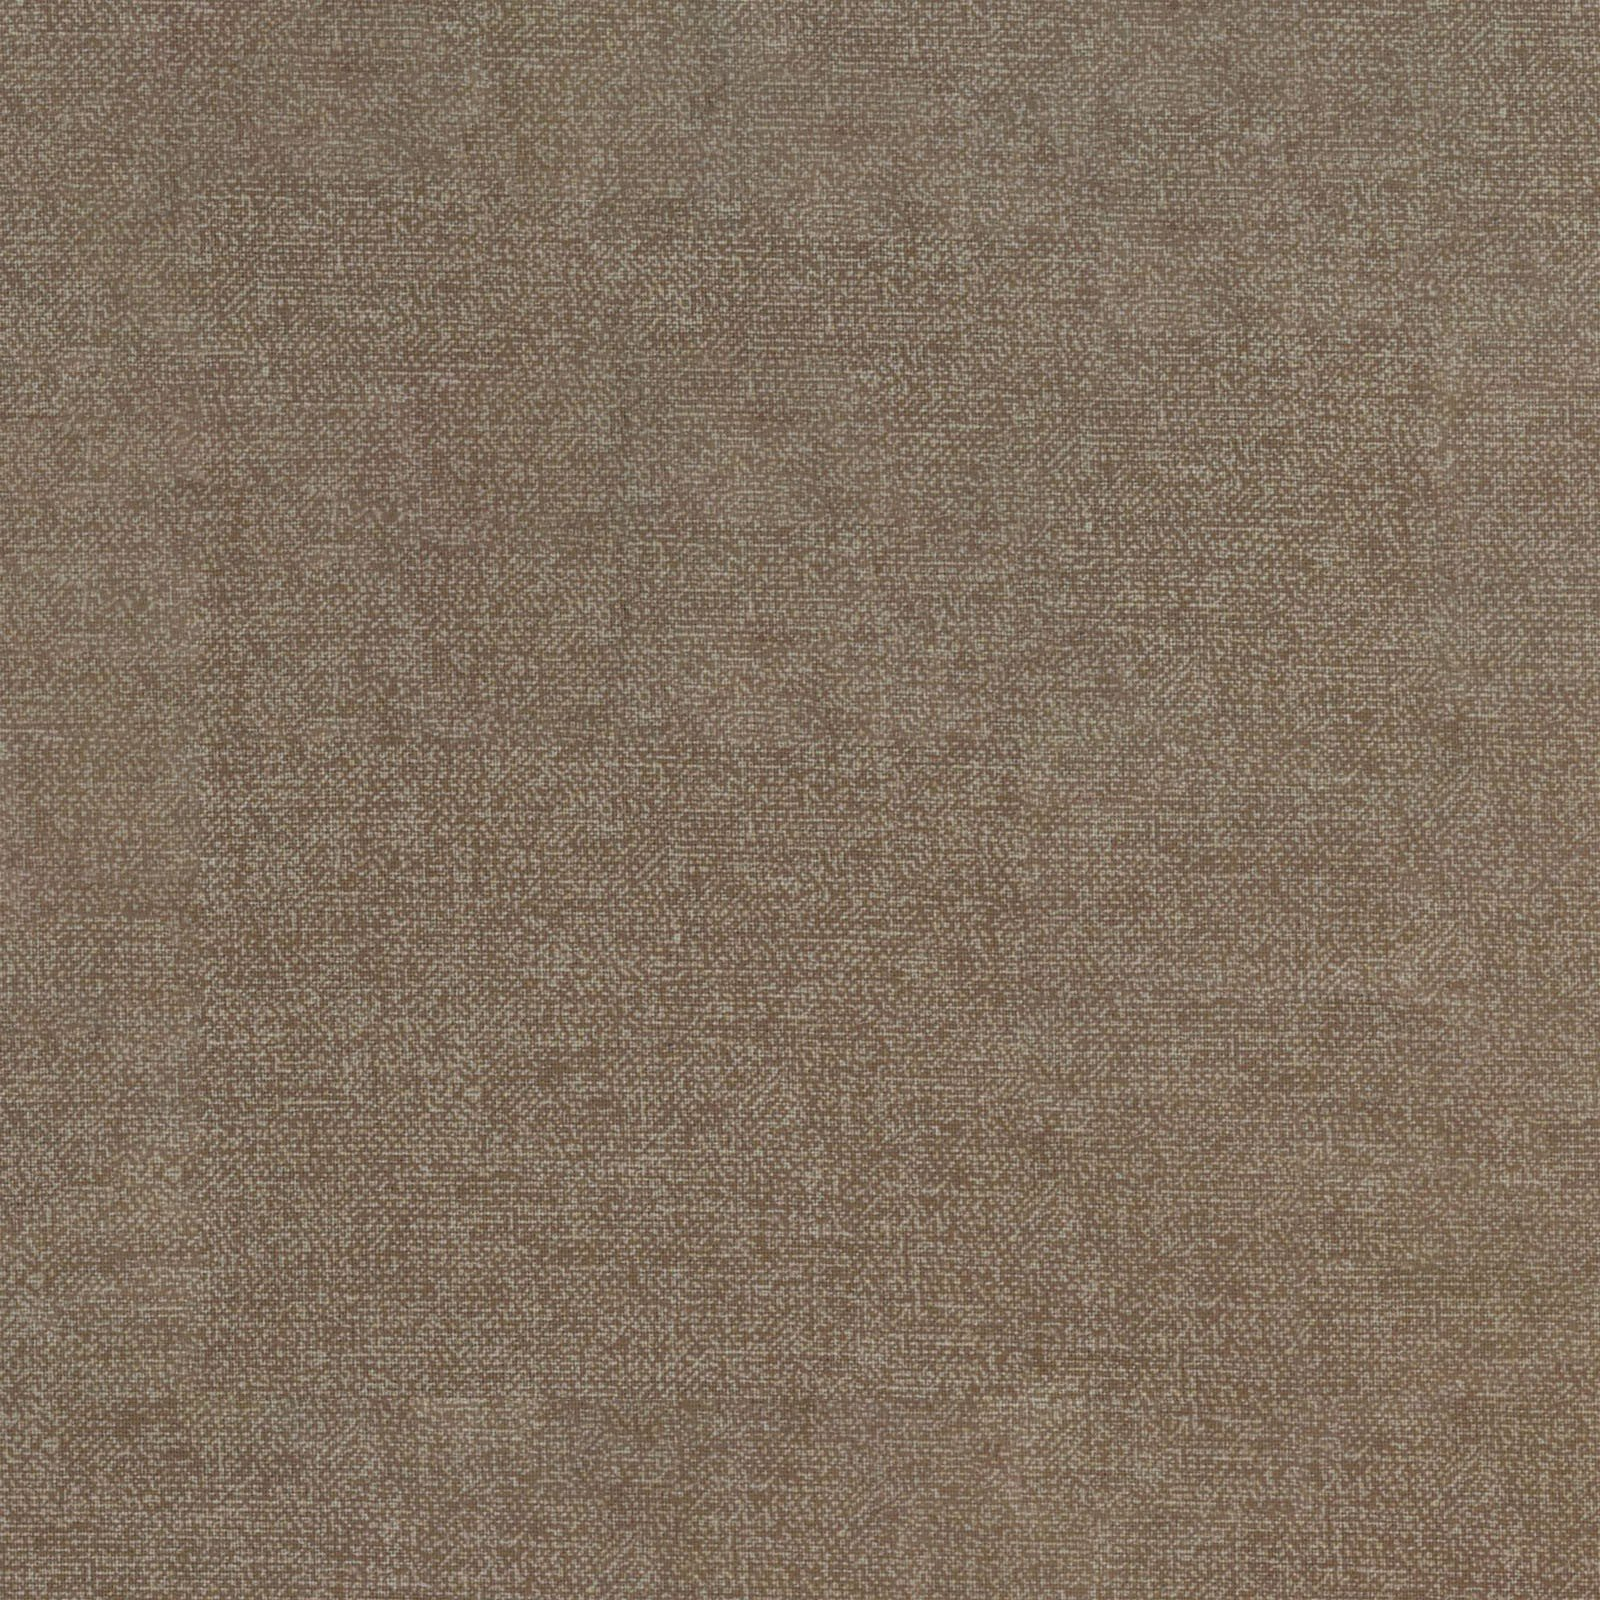 Tweed - Soft Brown<br/>Maywood Studio 22214-A